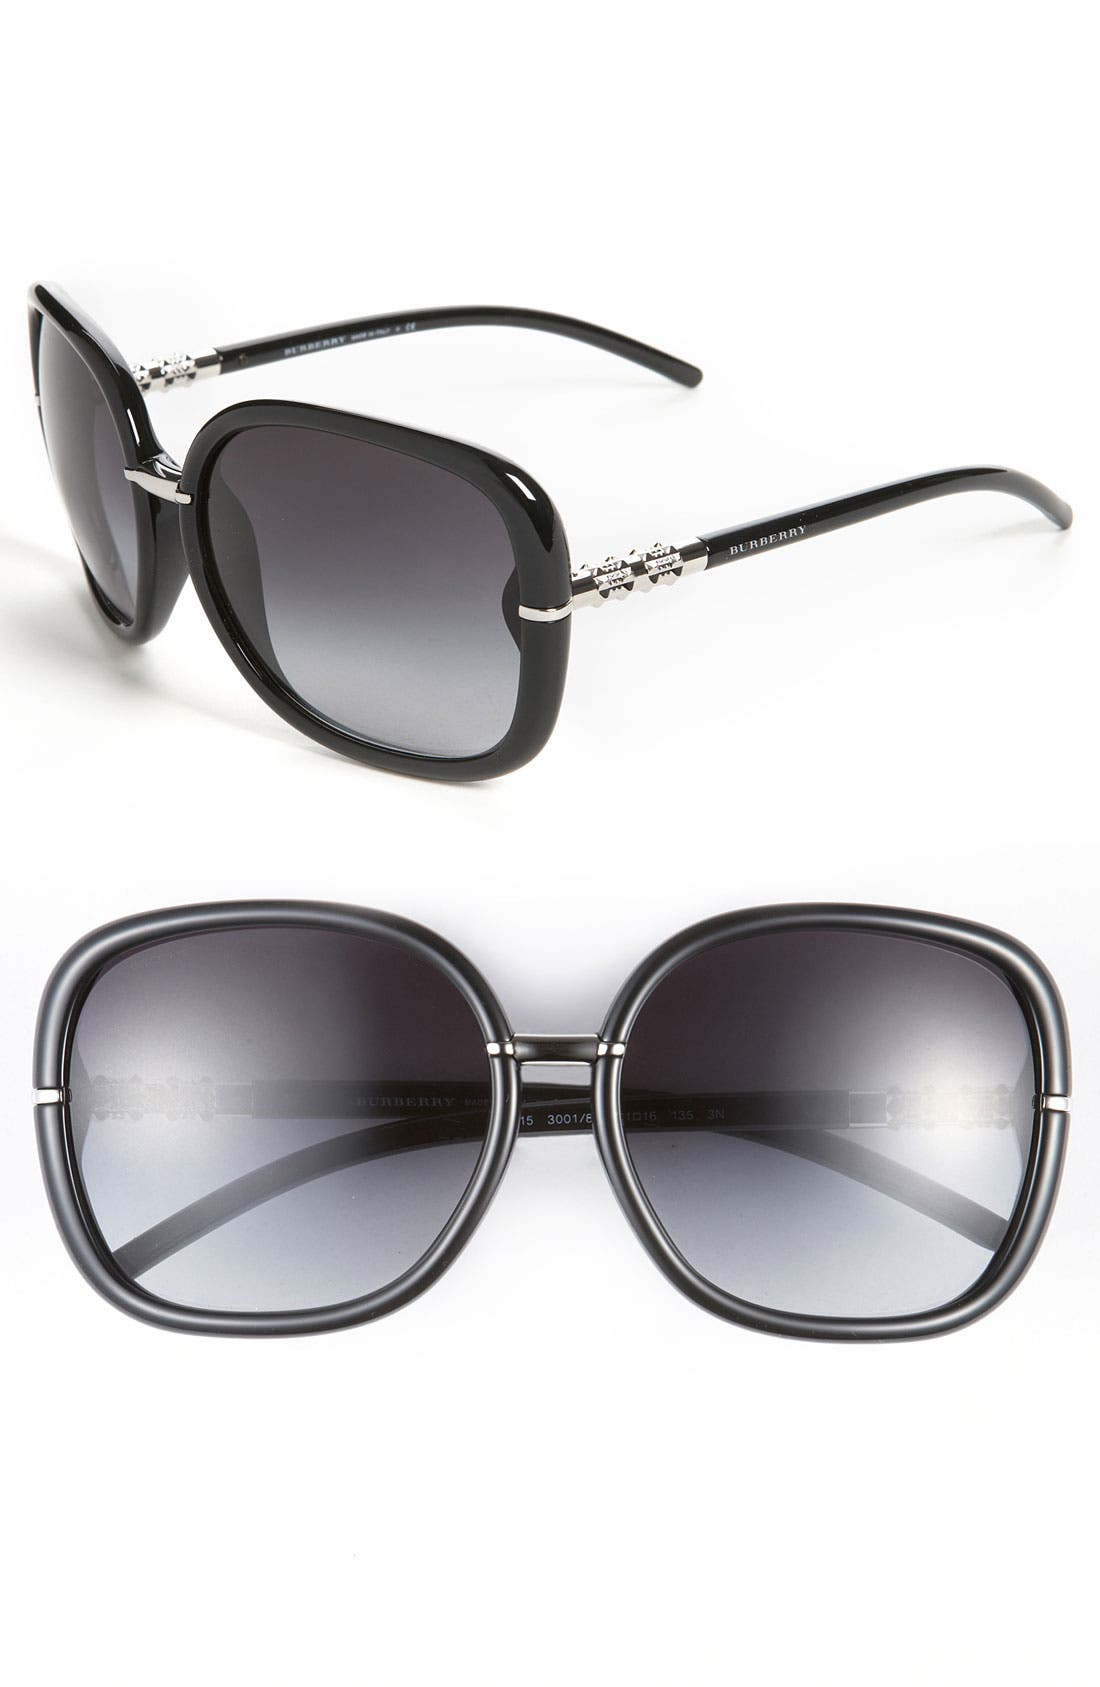 Main Image - Burberry Oversized Sunglasses